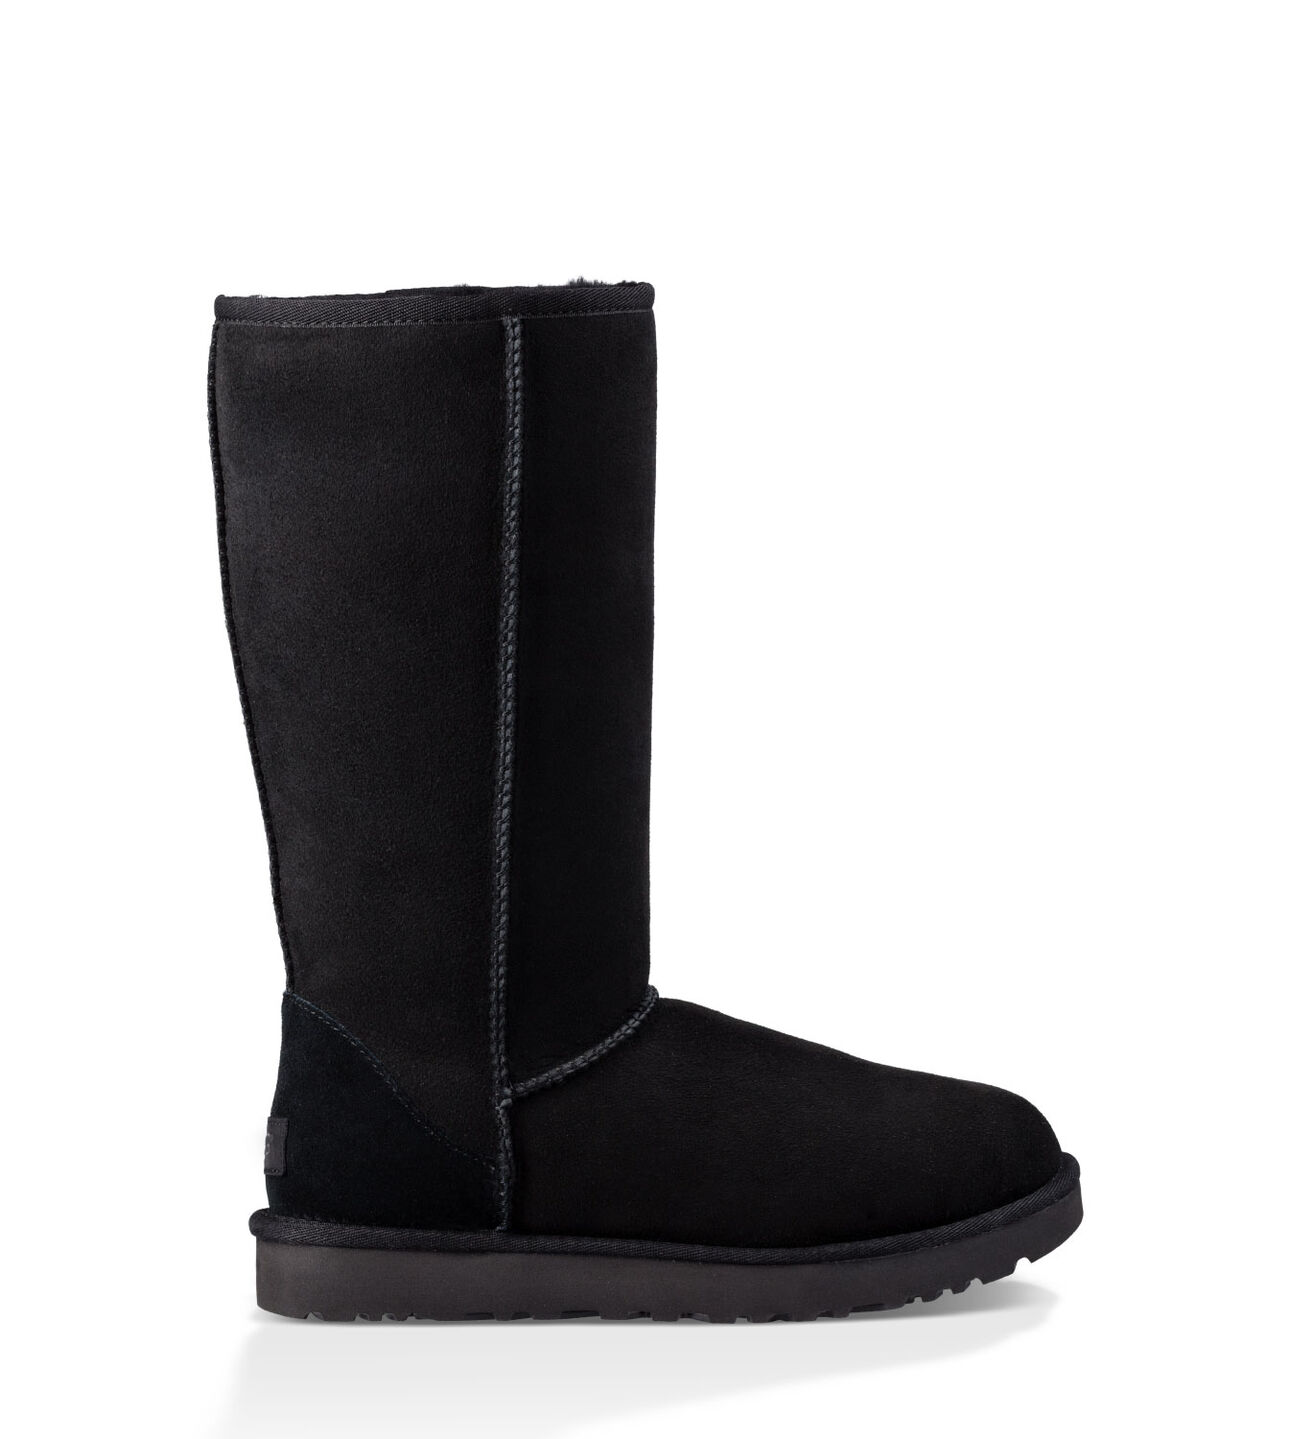 e572d0184fb4 Classic Tall Sheepskin Boots